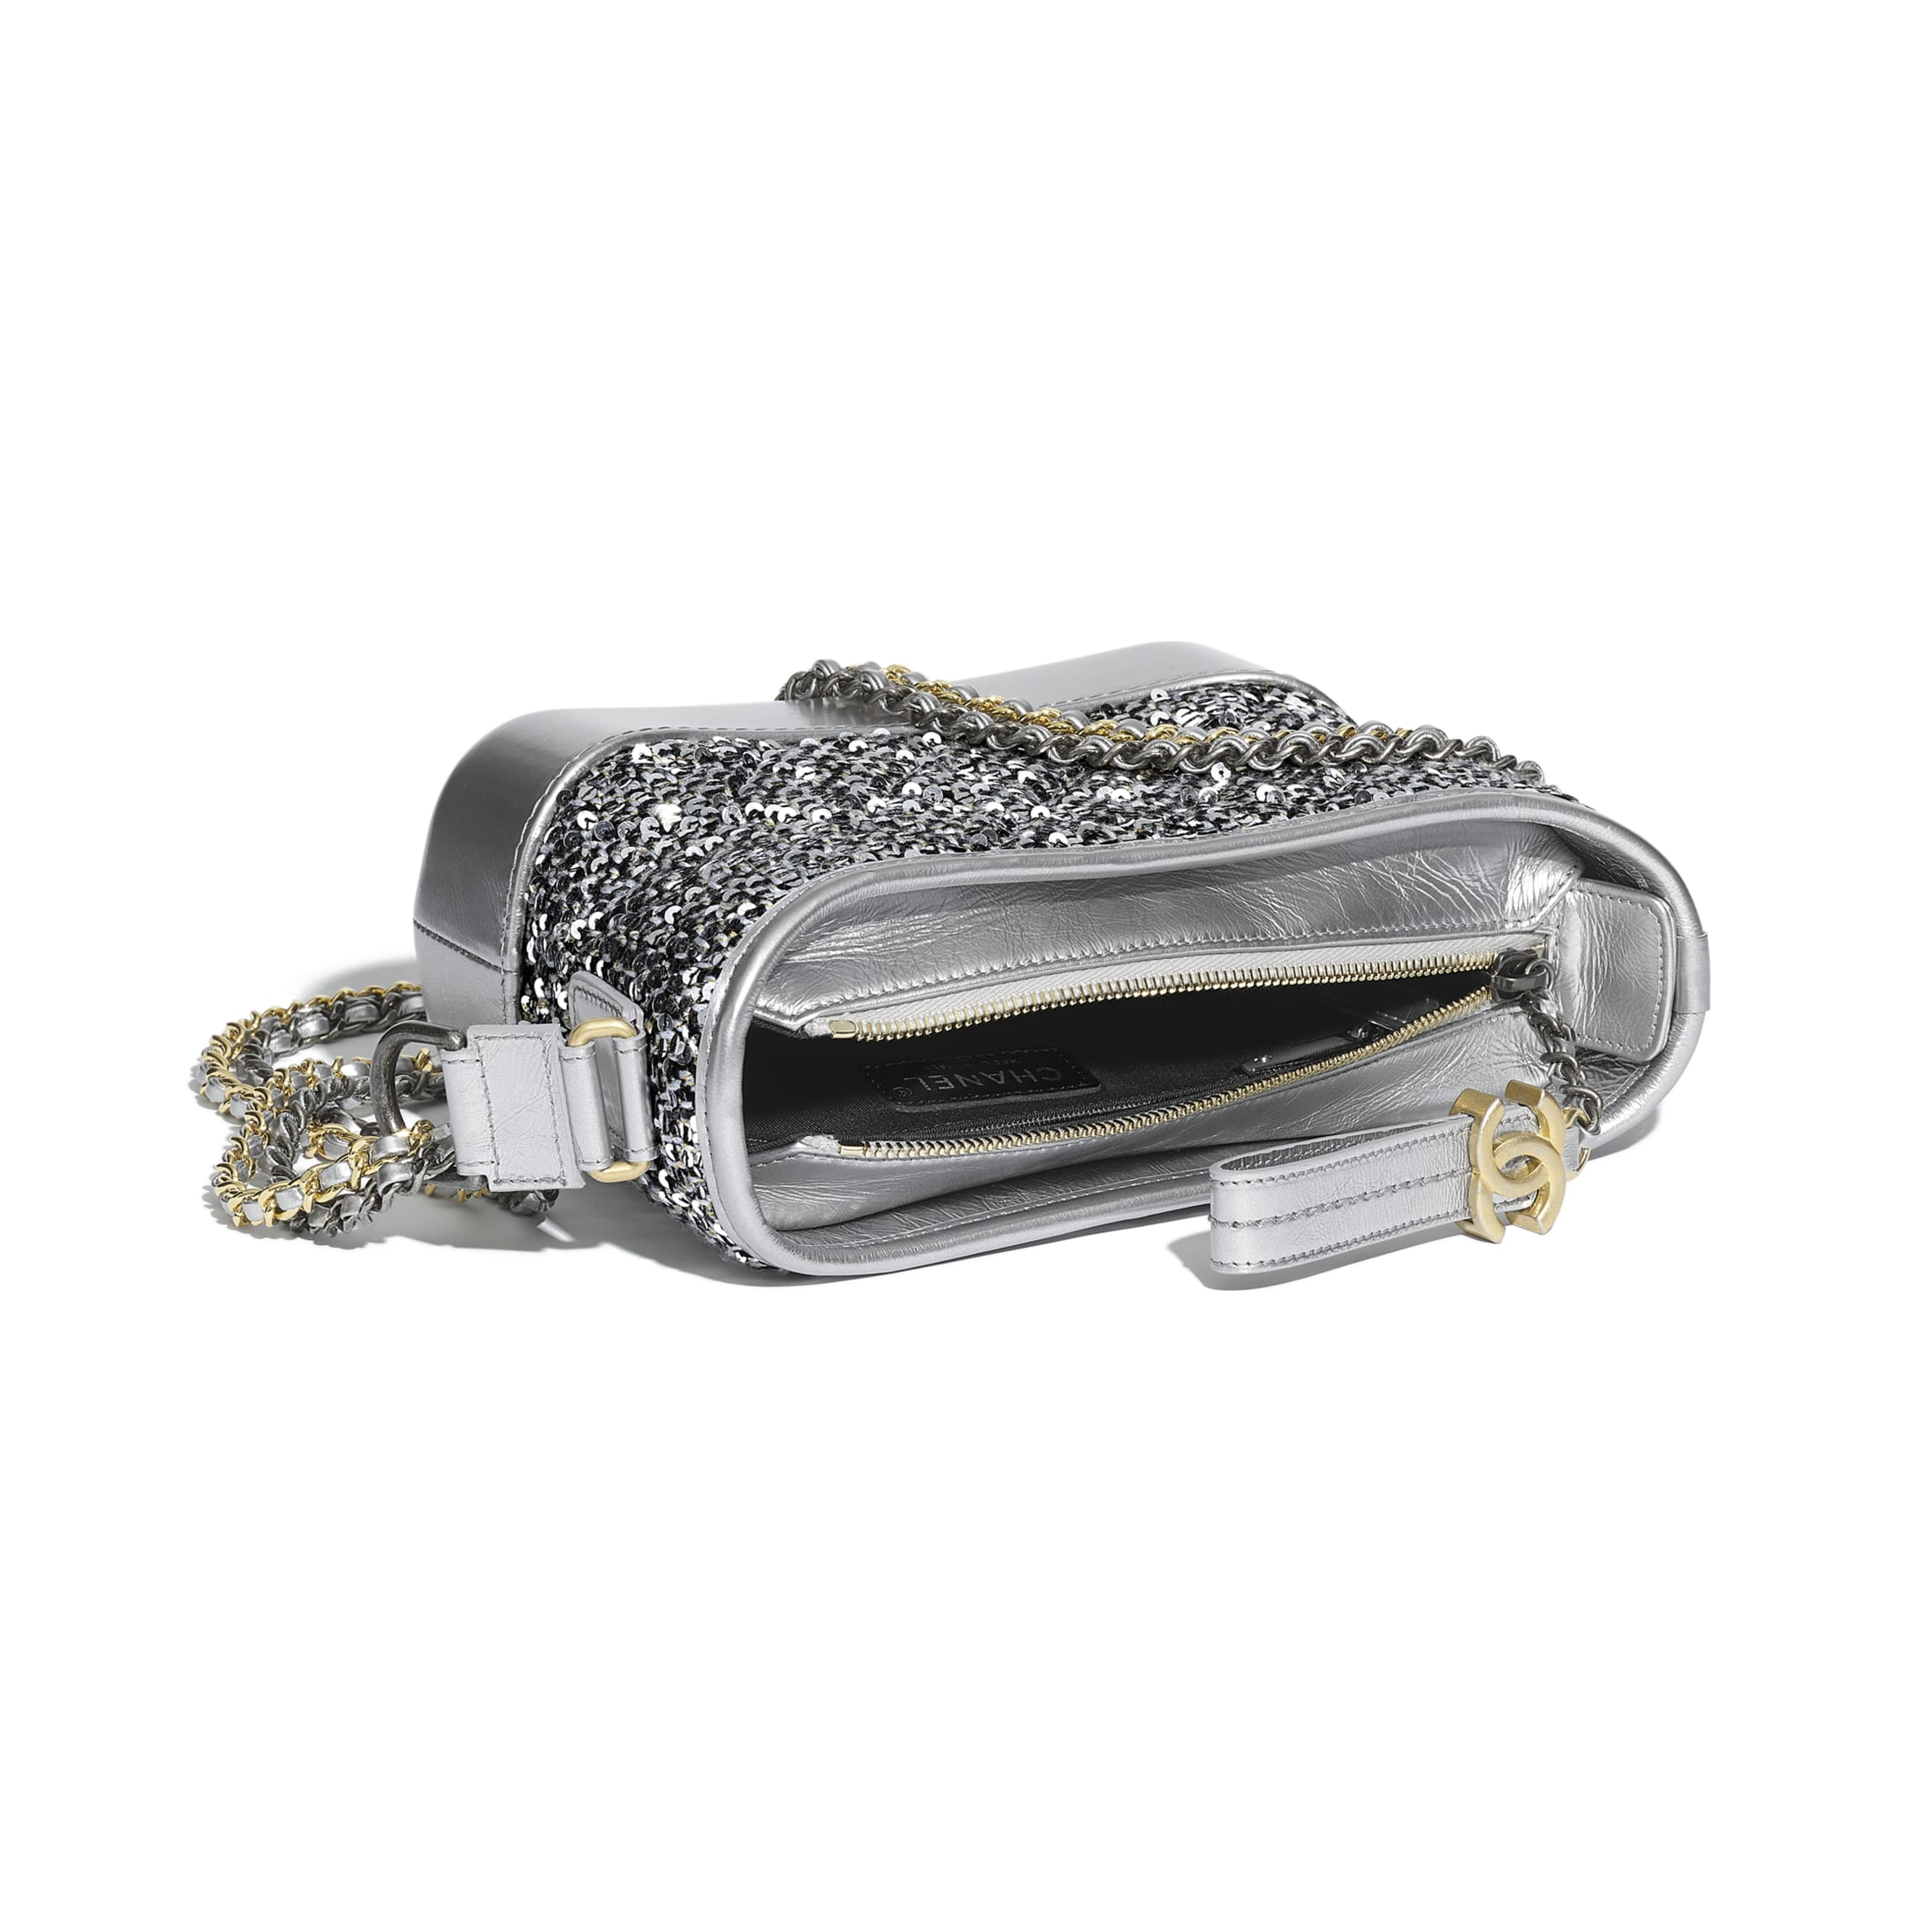 CHANEL'S GABRIELLE Small Hobo Bag - Silver, Black & Gold - Tweed, Sequins, Gold-Tone, Silver-Tone & Ruthenium-Finish Metal - CHANEL - Other view - see standard sized version